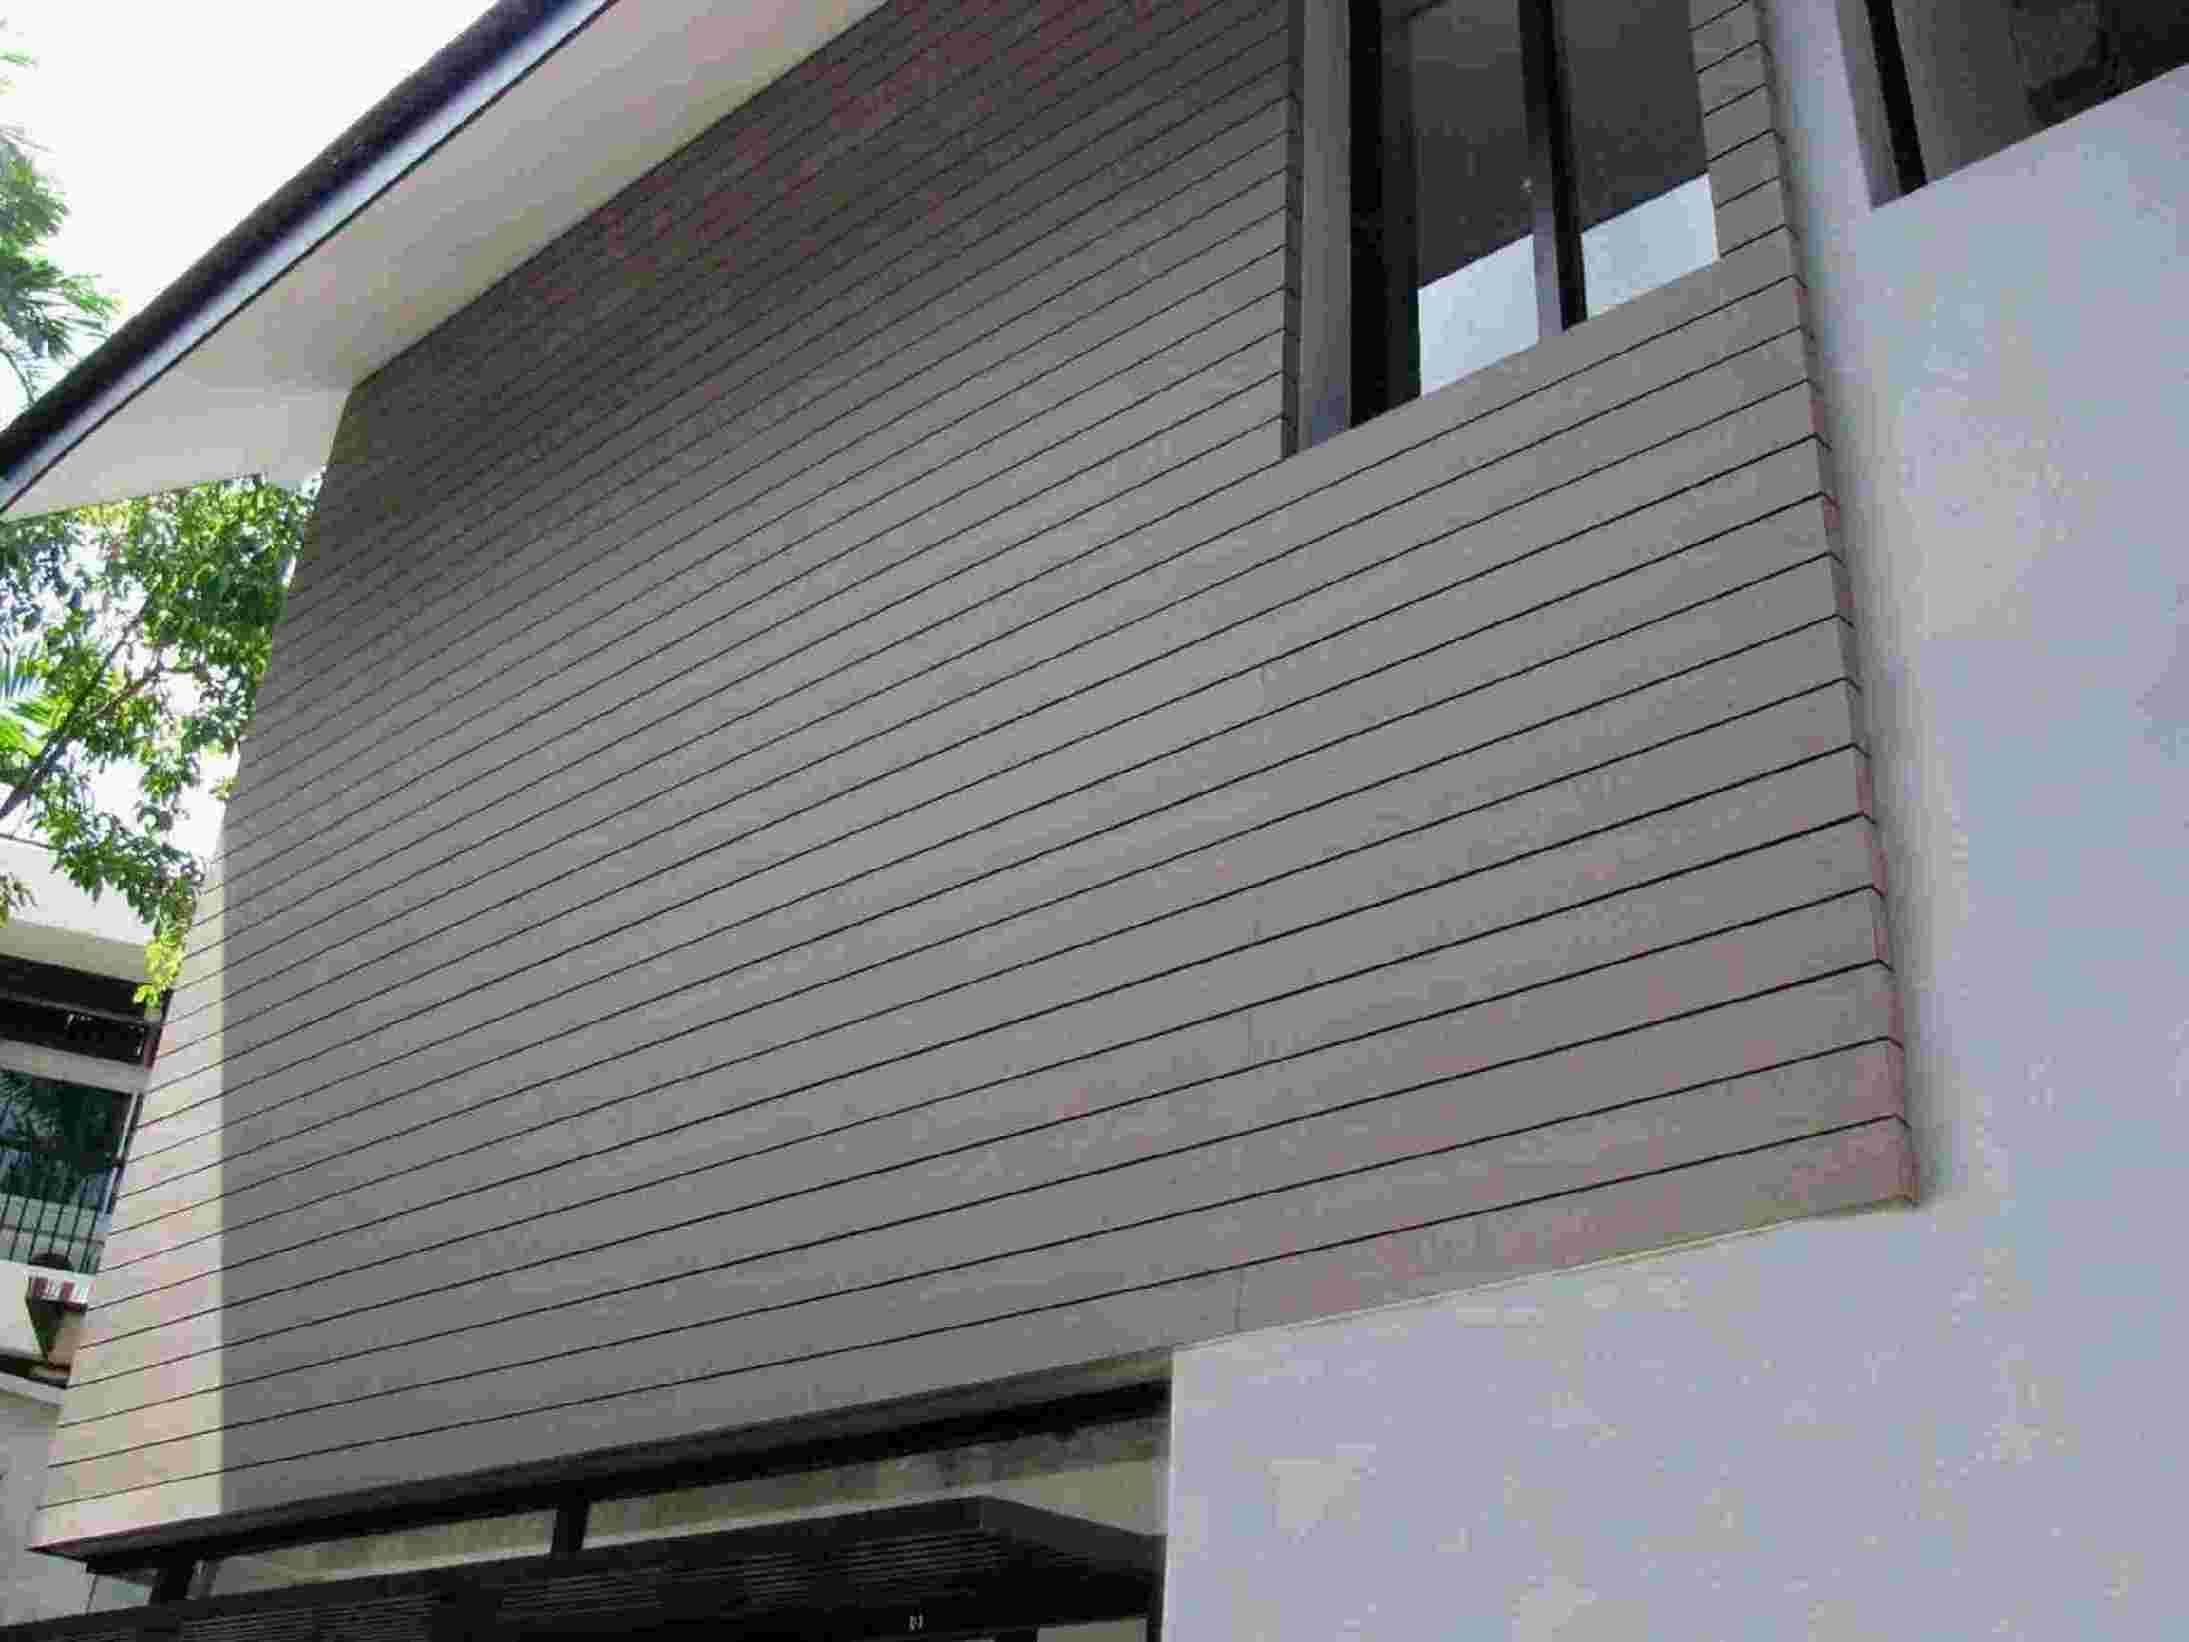 Malaysia Pvc Wallboard Prices Wood Cladding Exterior Outdoor Wall Panels Outdoor Wall Decor